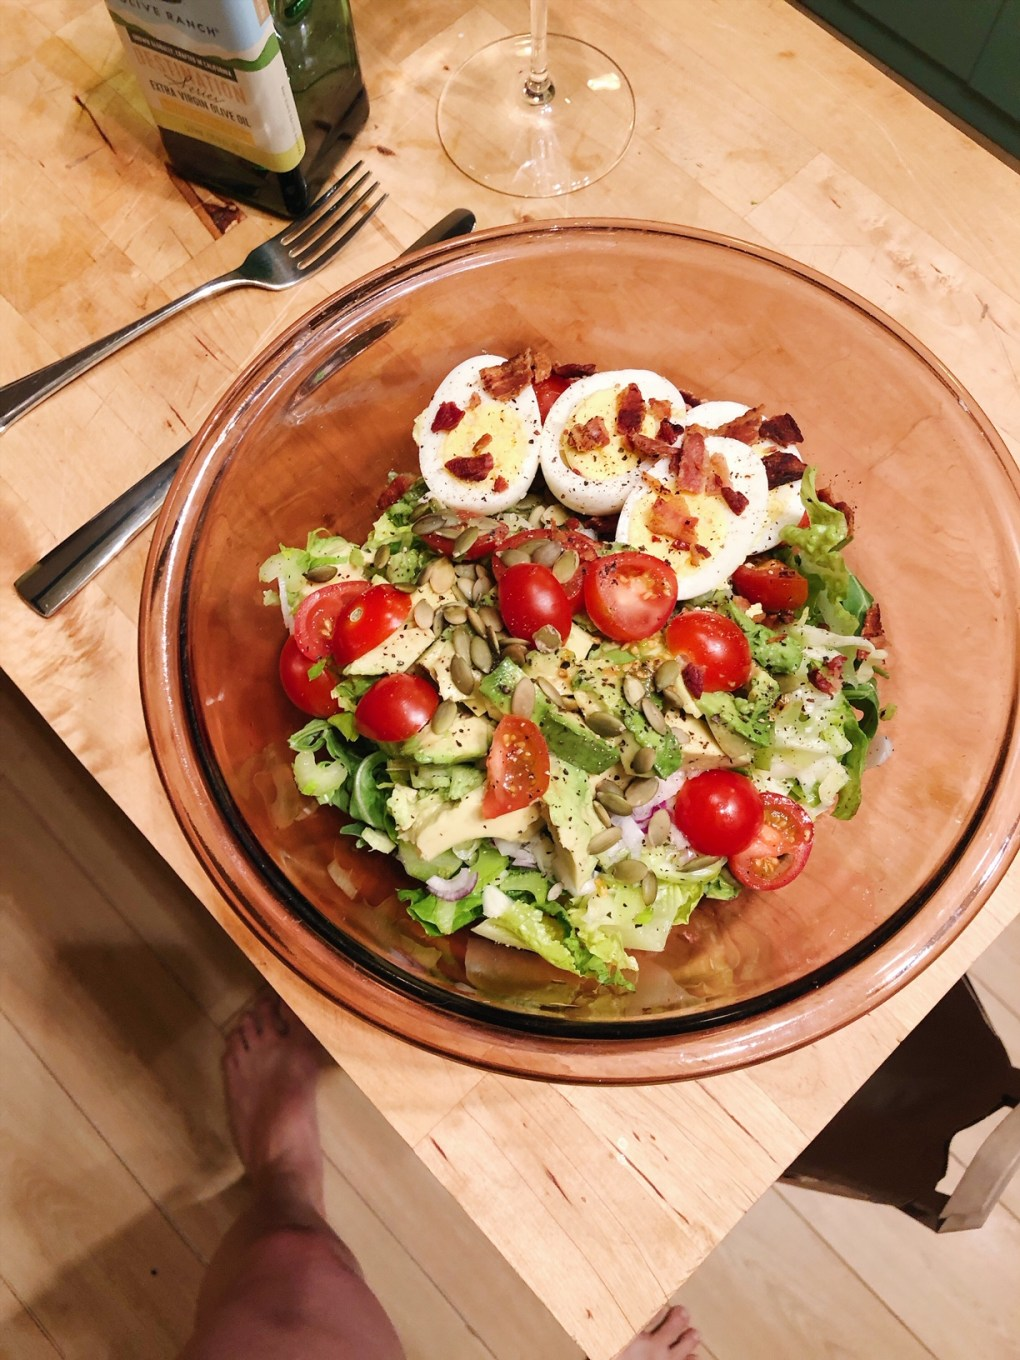 Big glass bowl of salad with hard boiled eggs, tomatoes, crumbled bacon, and pumpkin seeds on a wooden kitchen island next to a fork and knife.